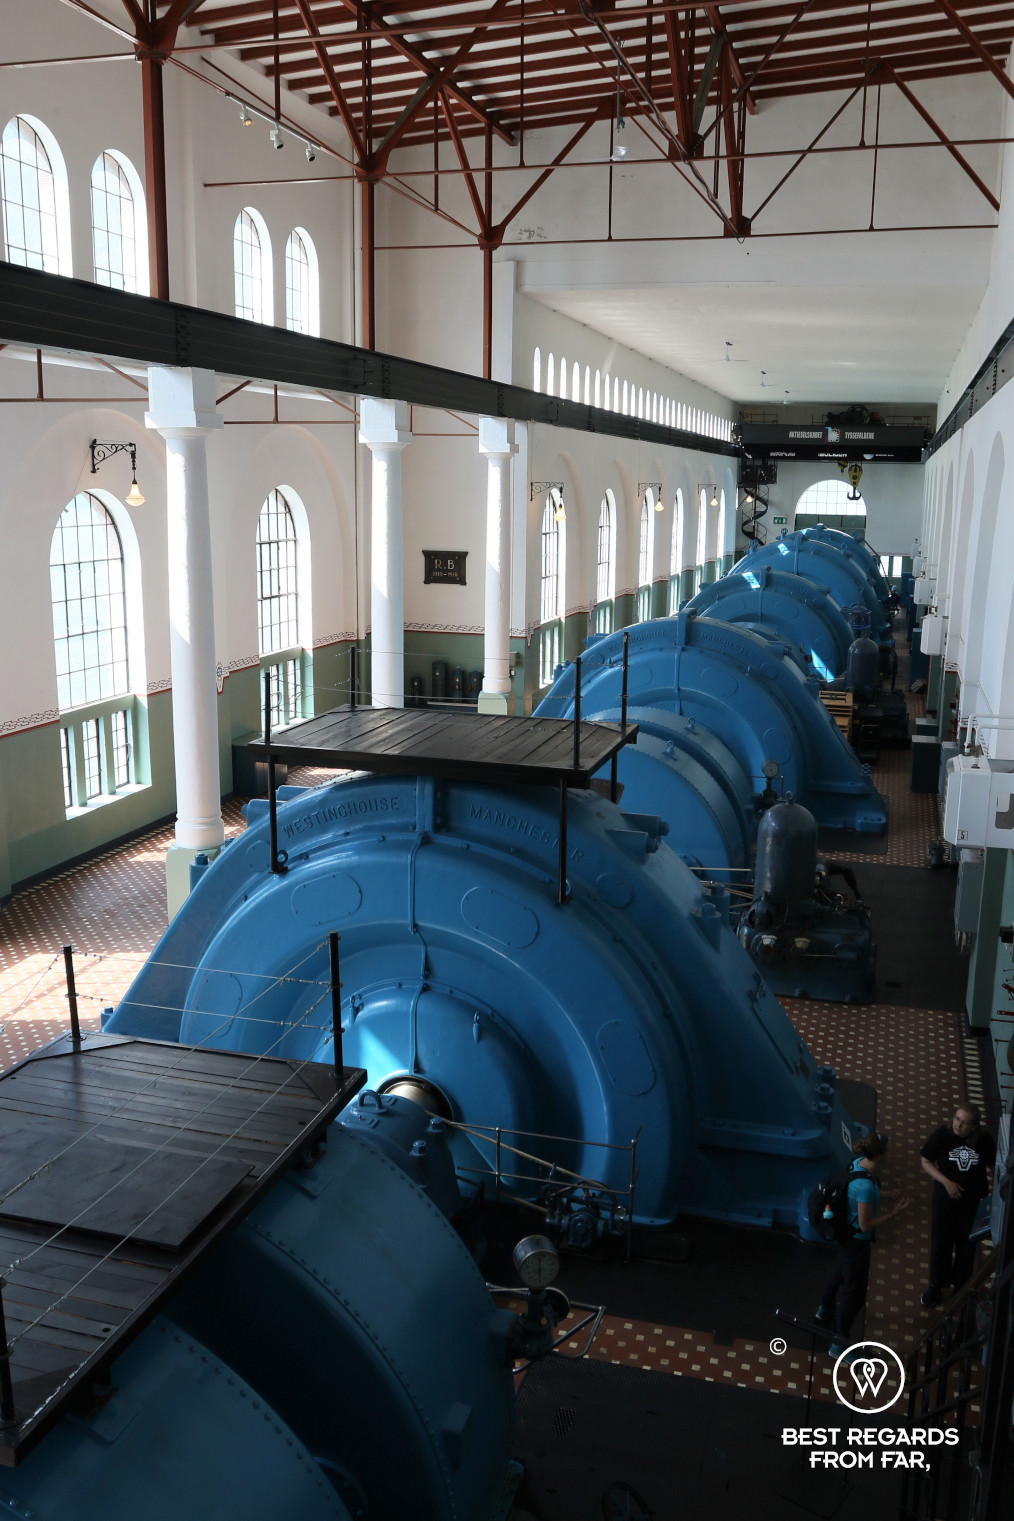 Generators at the Norwegian Museum of Hydropower and Industry, Tyssedal, Norway